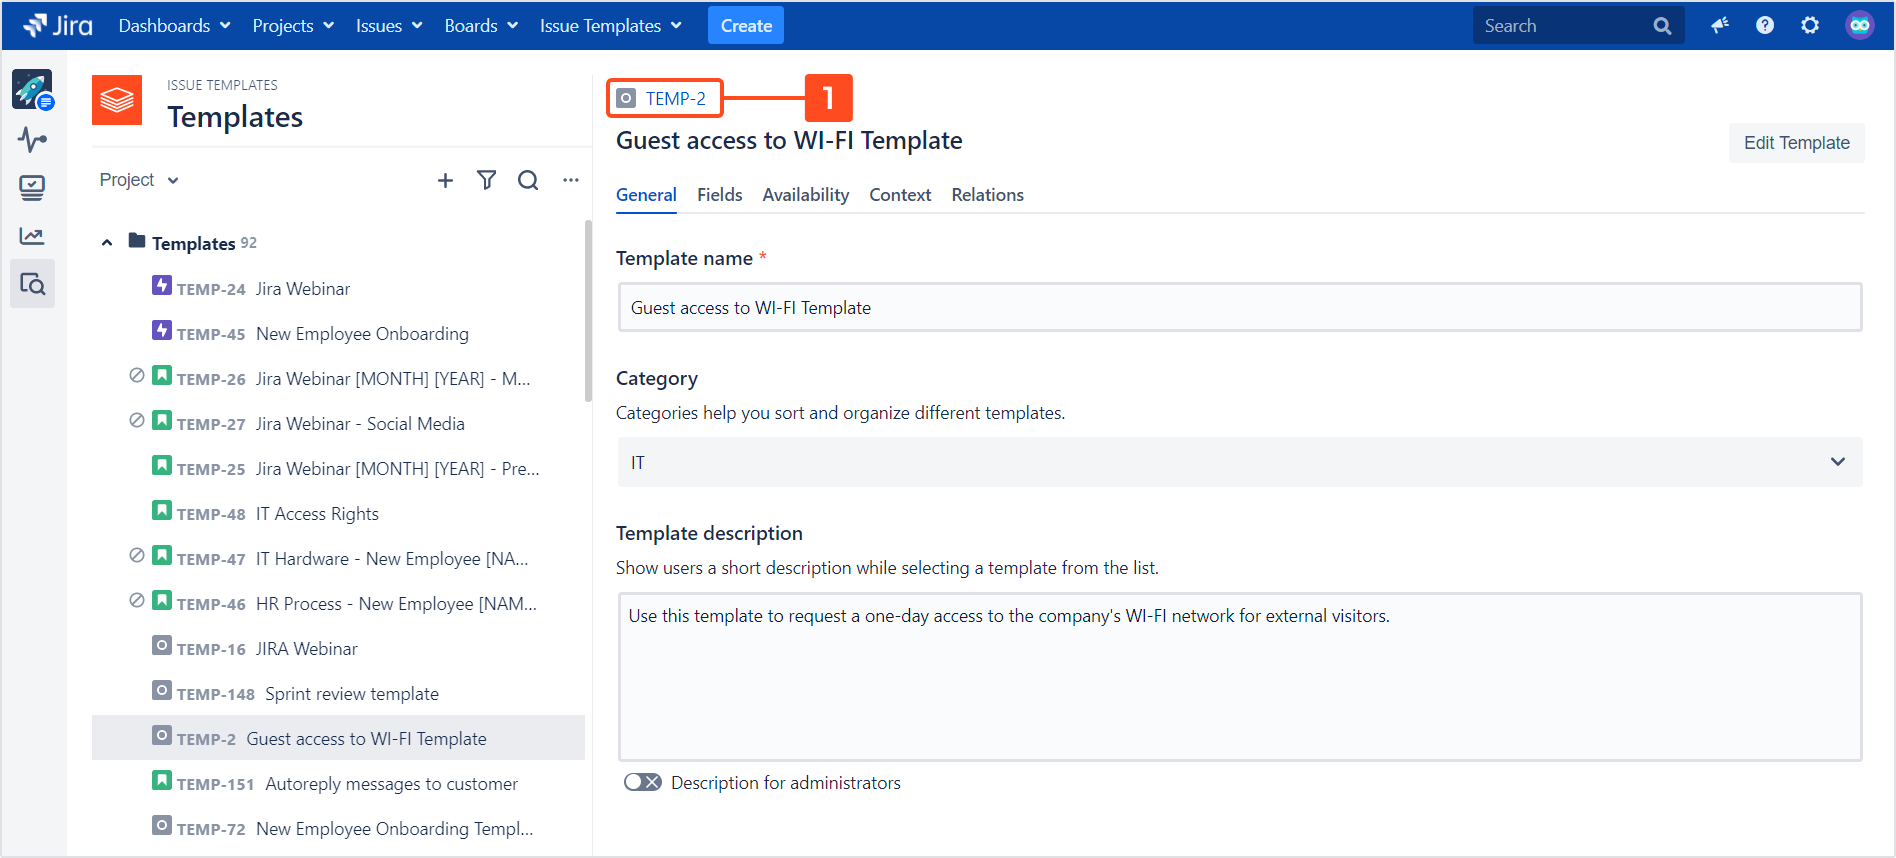 Issue Templates for Jira - Edit a template